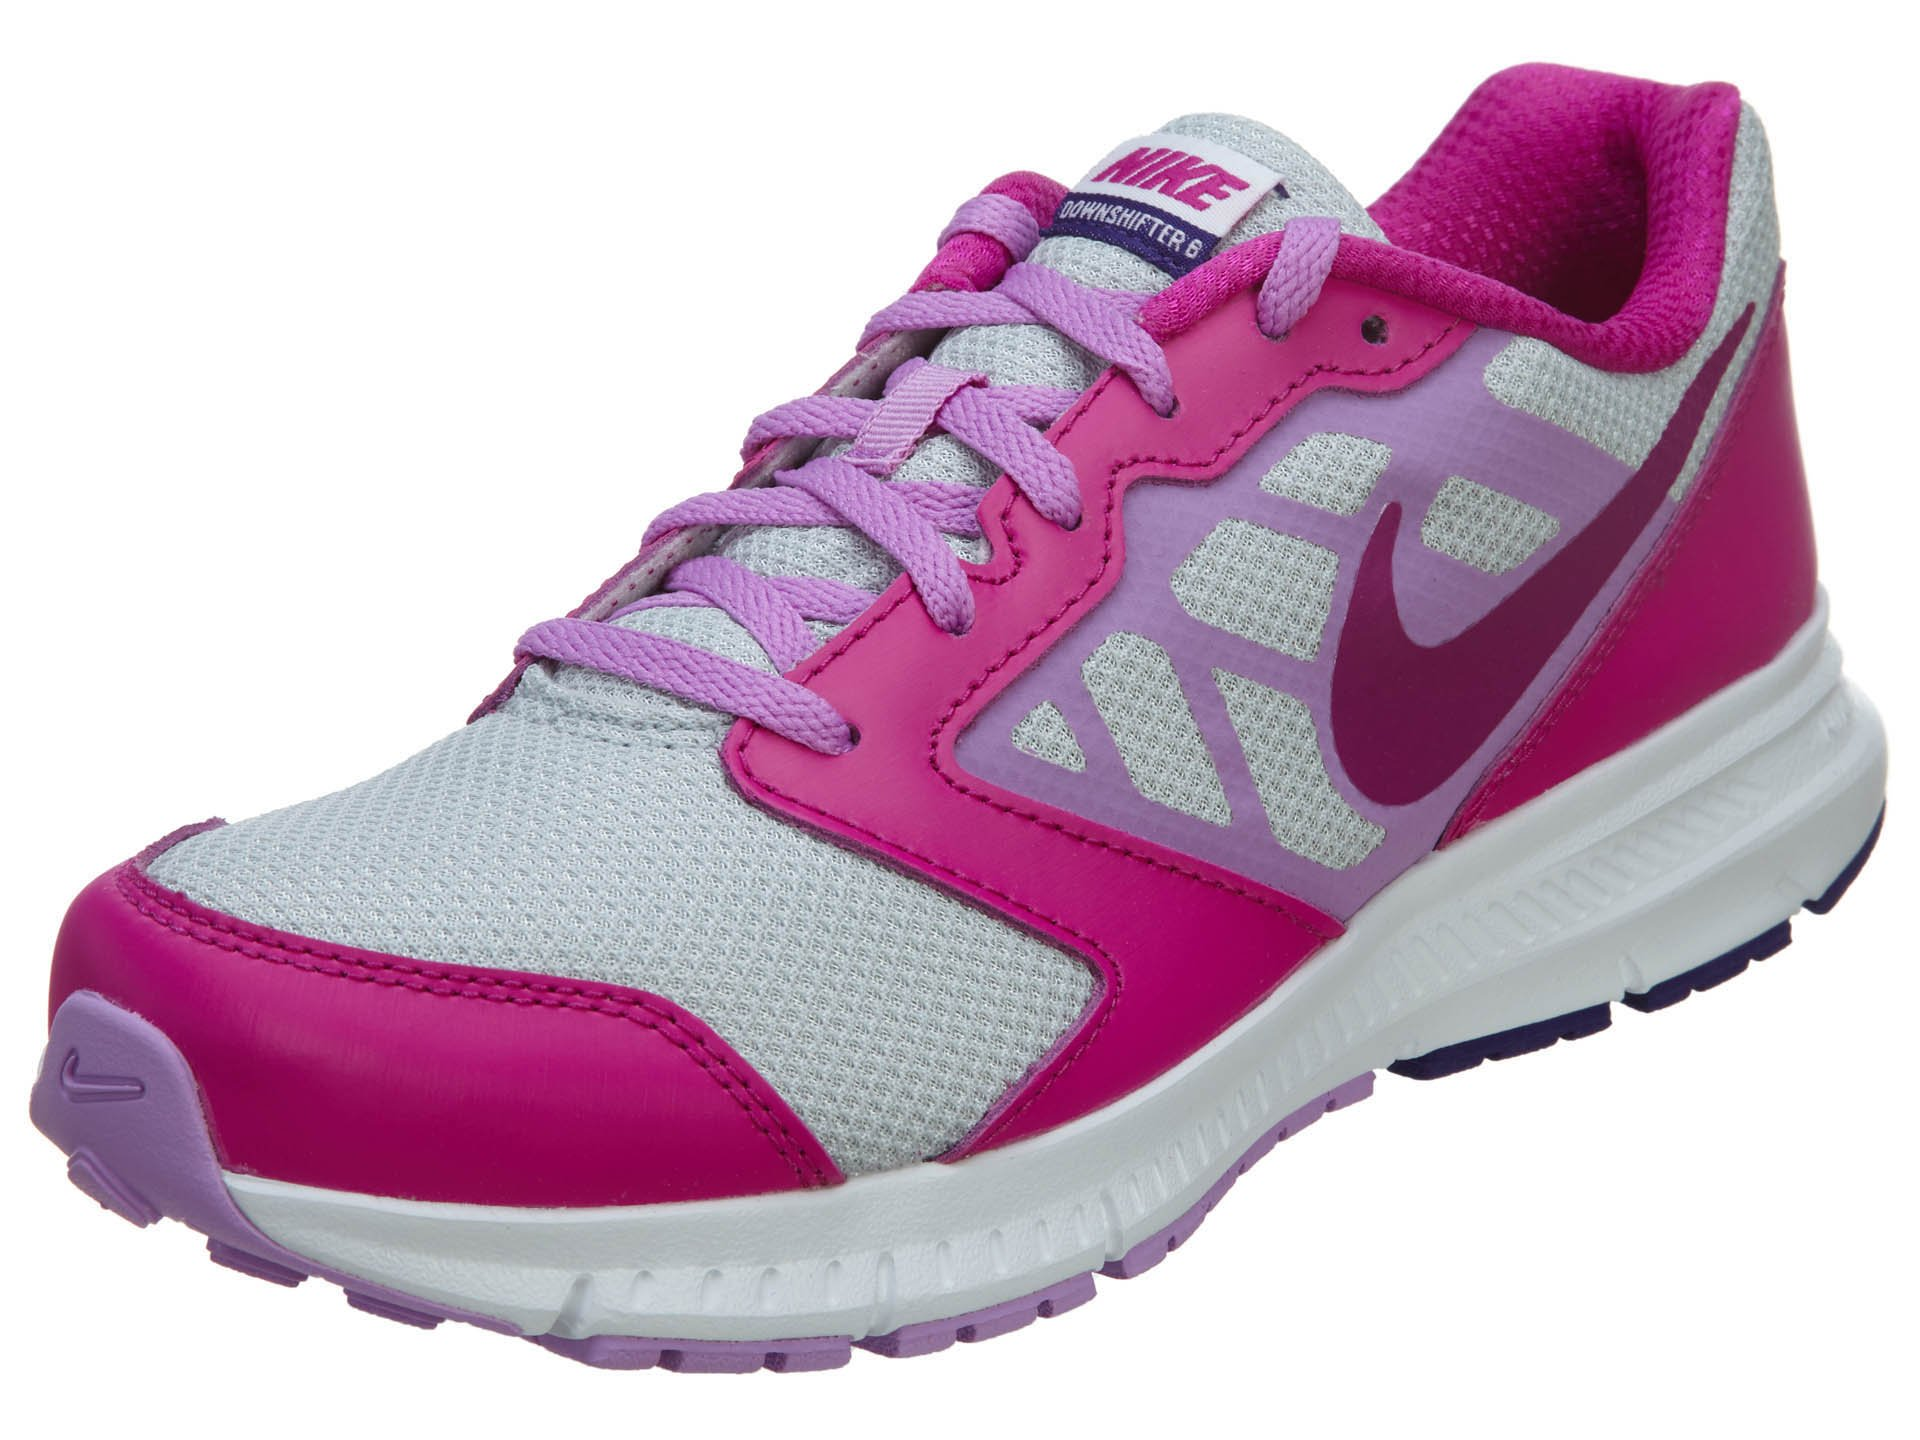 NIKE Kids' Downshifter 6 (GS/PS) Running Shoes, Pure Platinum/Fuchsia Glow/Fuchsia Flash, 5 M US Little Kid